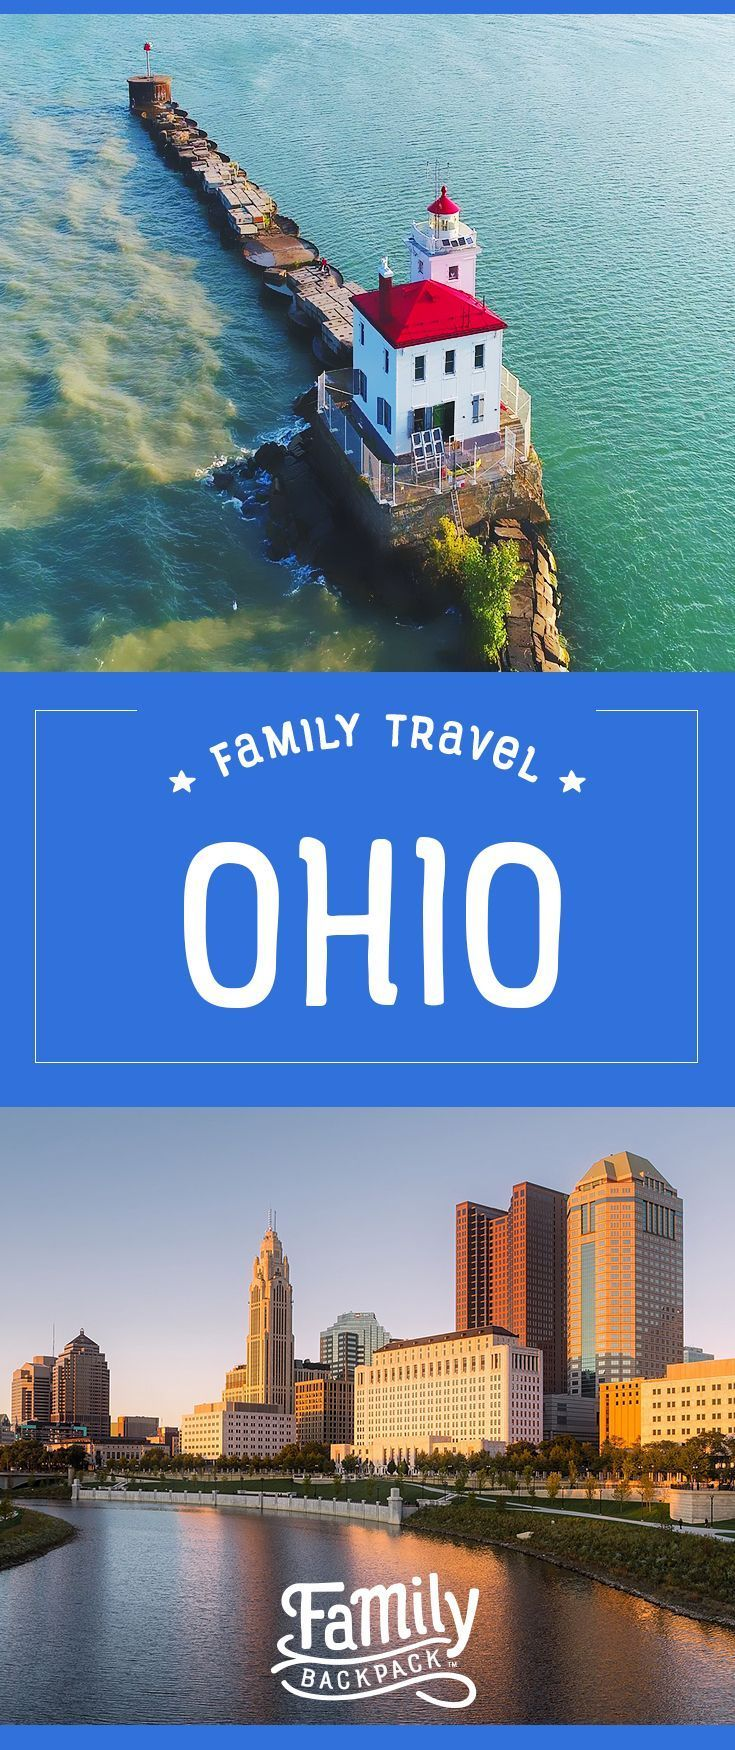 Family Travel in Ohio-  Looking for a great #familytravel #destination without having to battle huge crowds of people? #Ohio is a great option for families! Check out our collection of fun #thingstodoin Ohio-  from family fun in #Cincinnati, exploring Amish country, checking out the animals at the #Columbus Zoo and Aquarium and more! Ohio is definitely #bucketlist worthy! Take a #roadtrip and get lost in Ohio, you won't be disappointed!